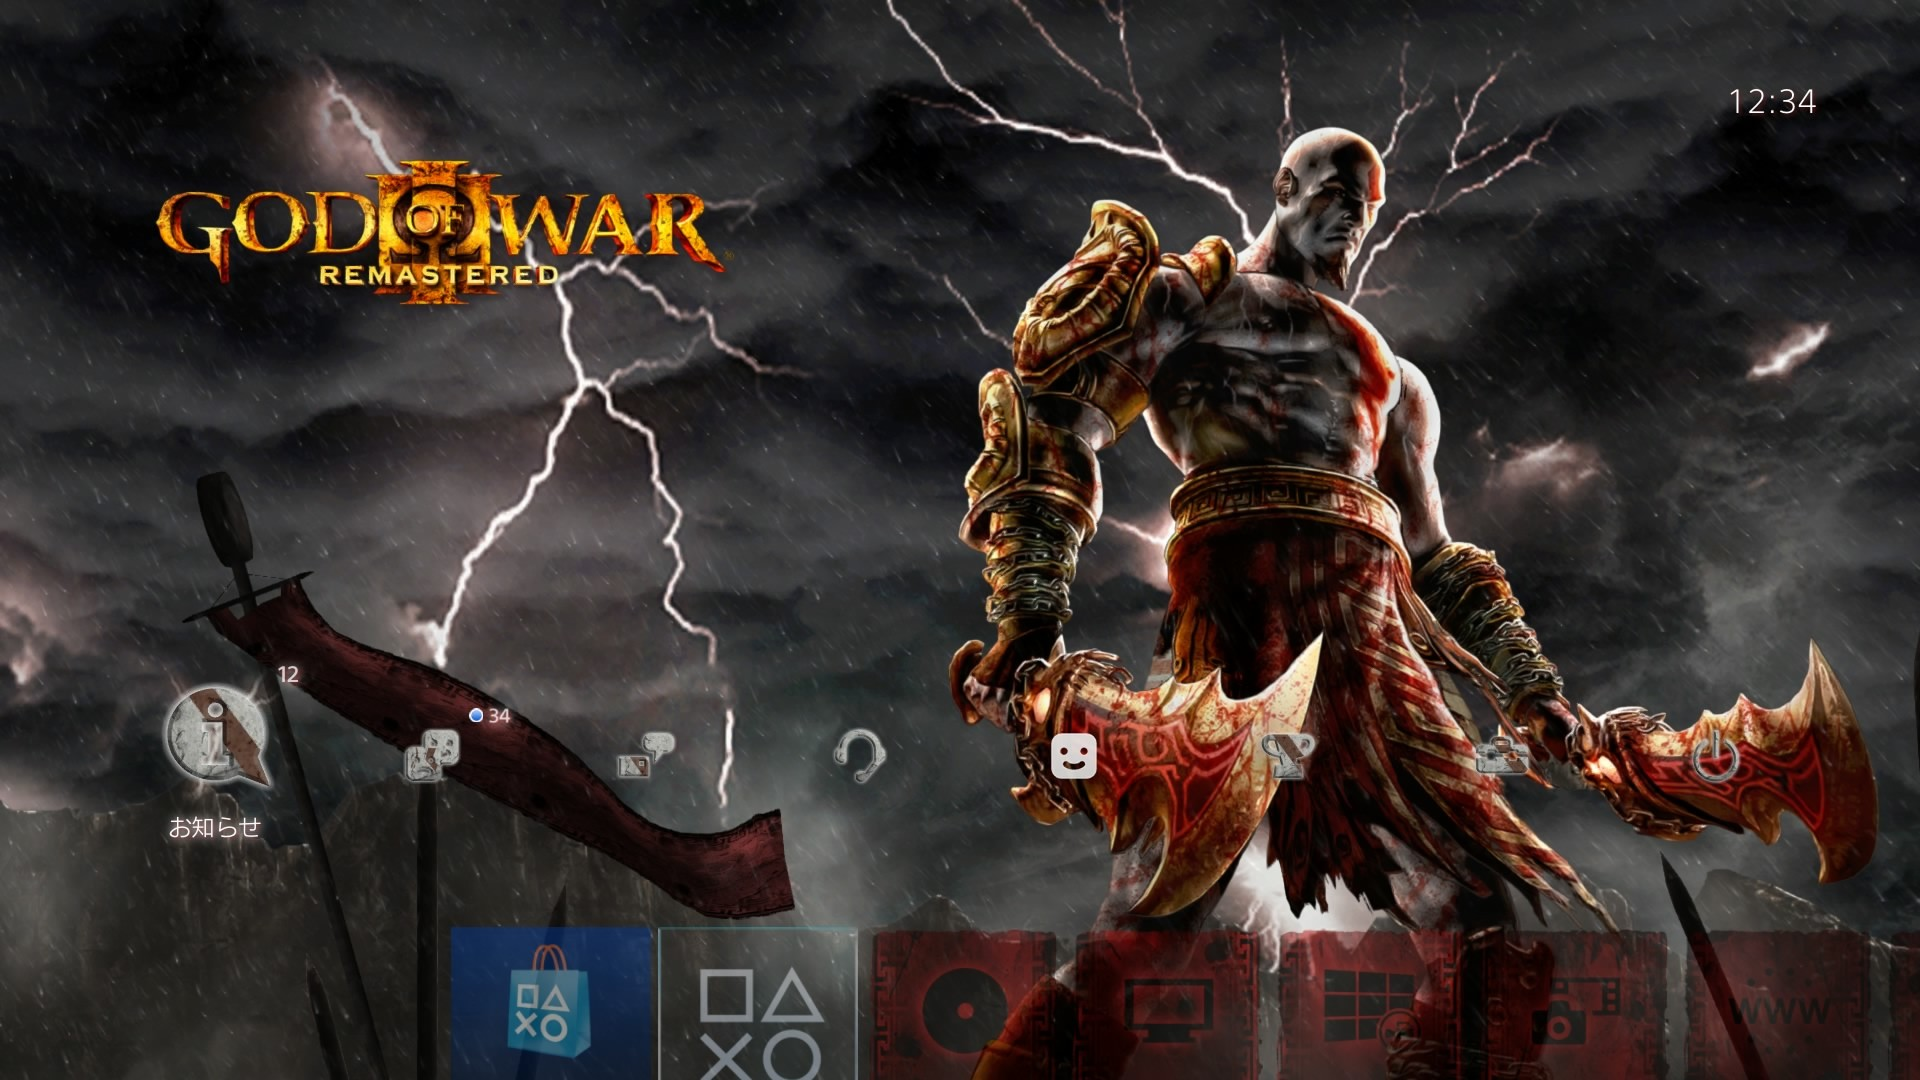 Check Out God of War III Remastered's PS4 Dynamic Theme in